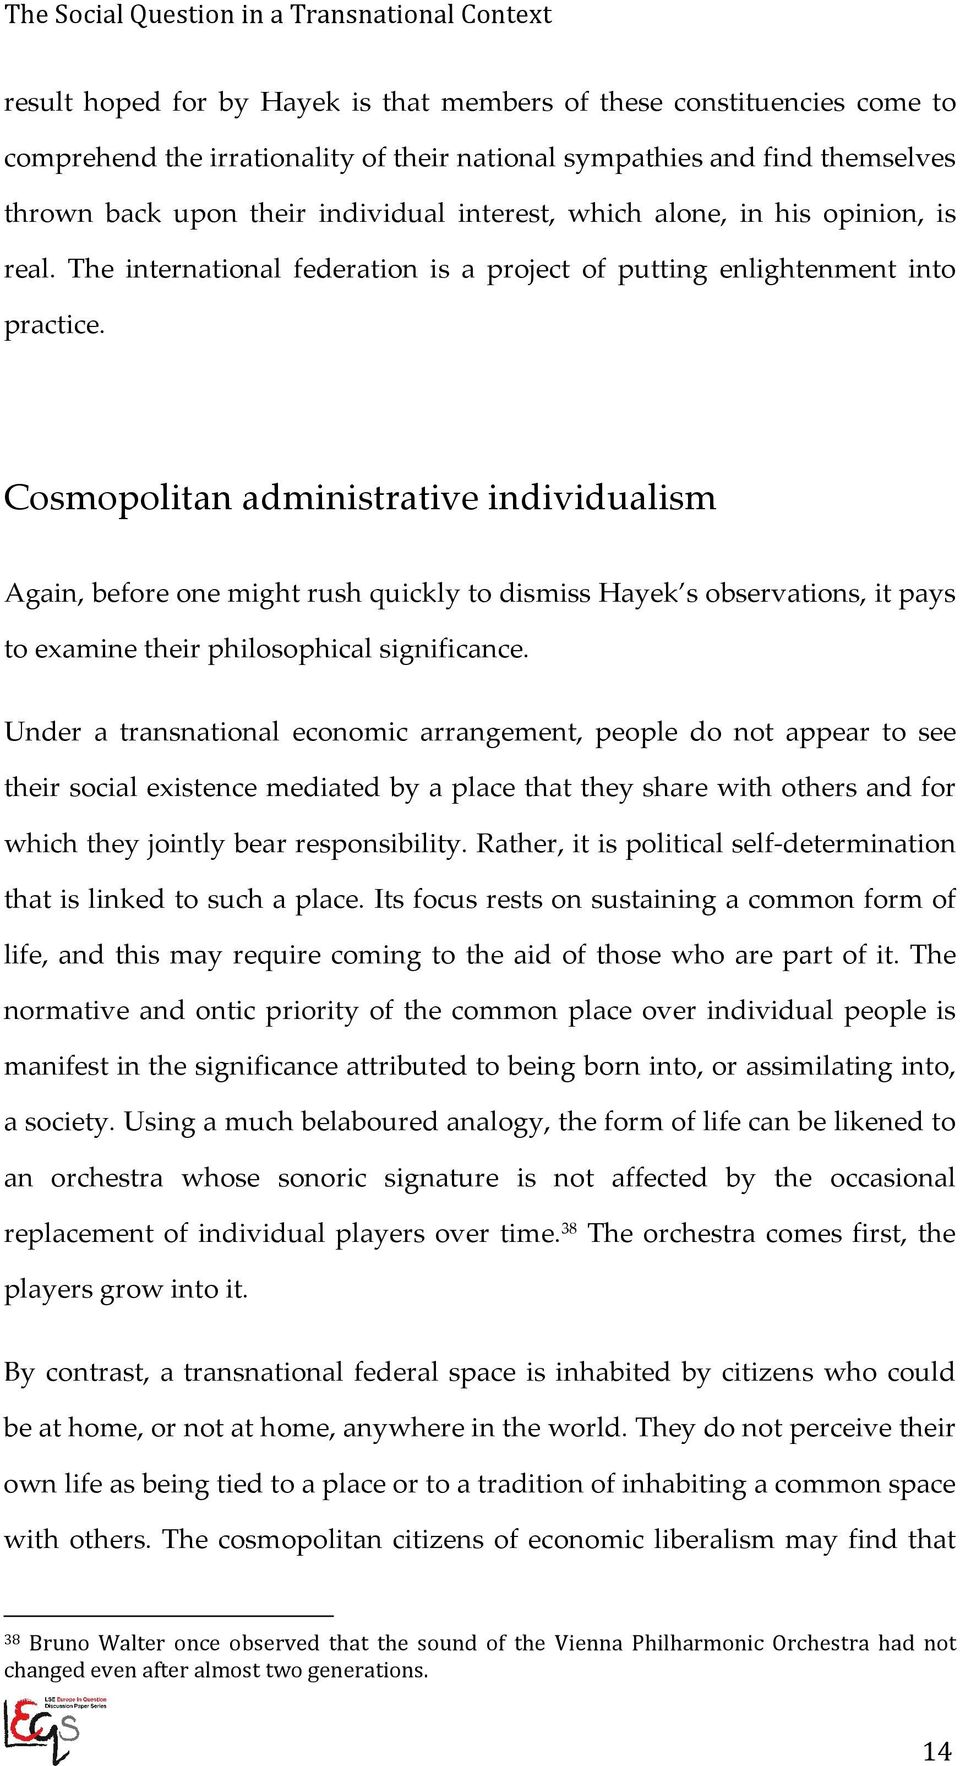 Cosmopolitan administrative individualism Again, before one might rush quickly to dismiss Hayek s observations, it pays to examine their philosophical significance.